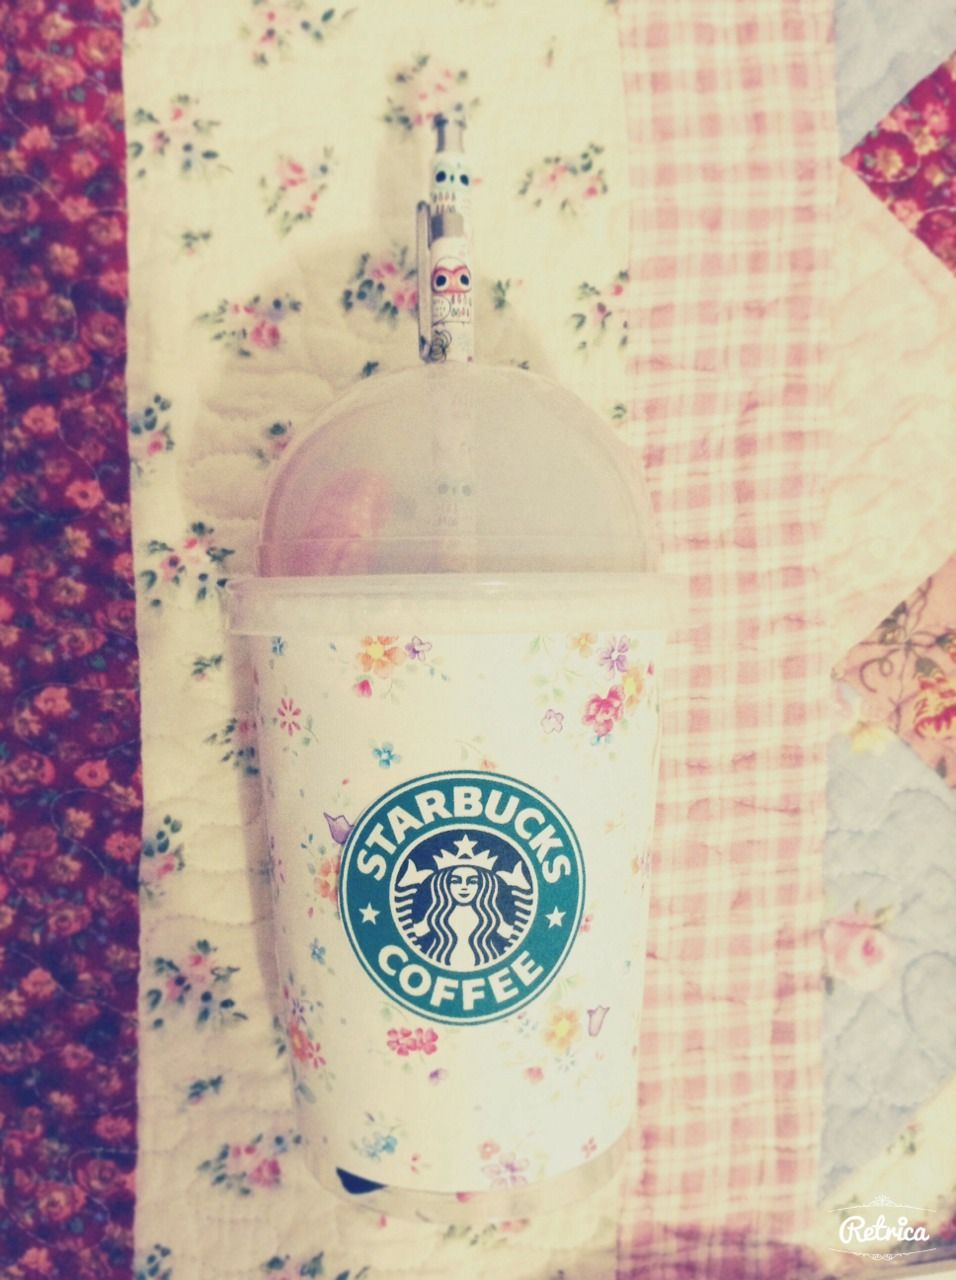 A bit confusing: DIY starbucks cup